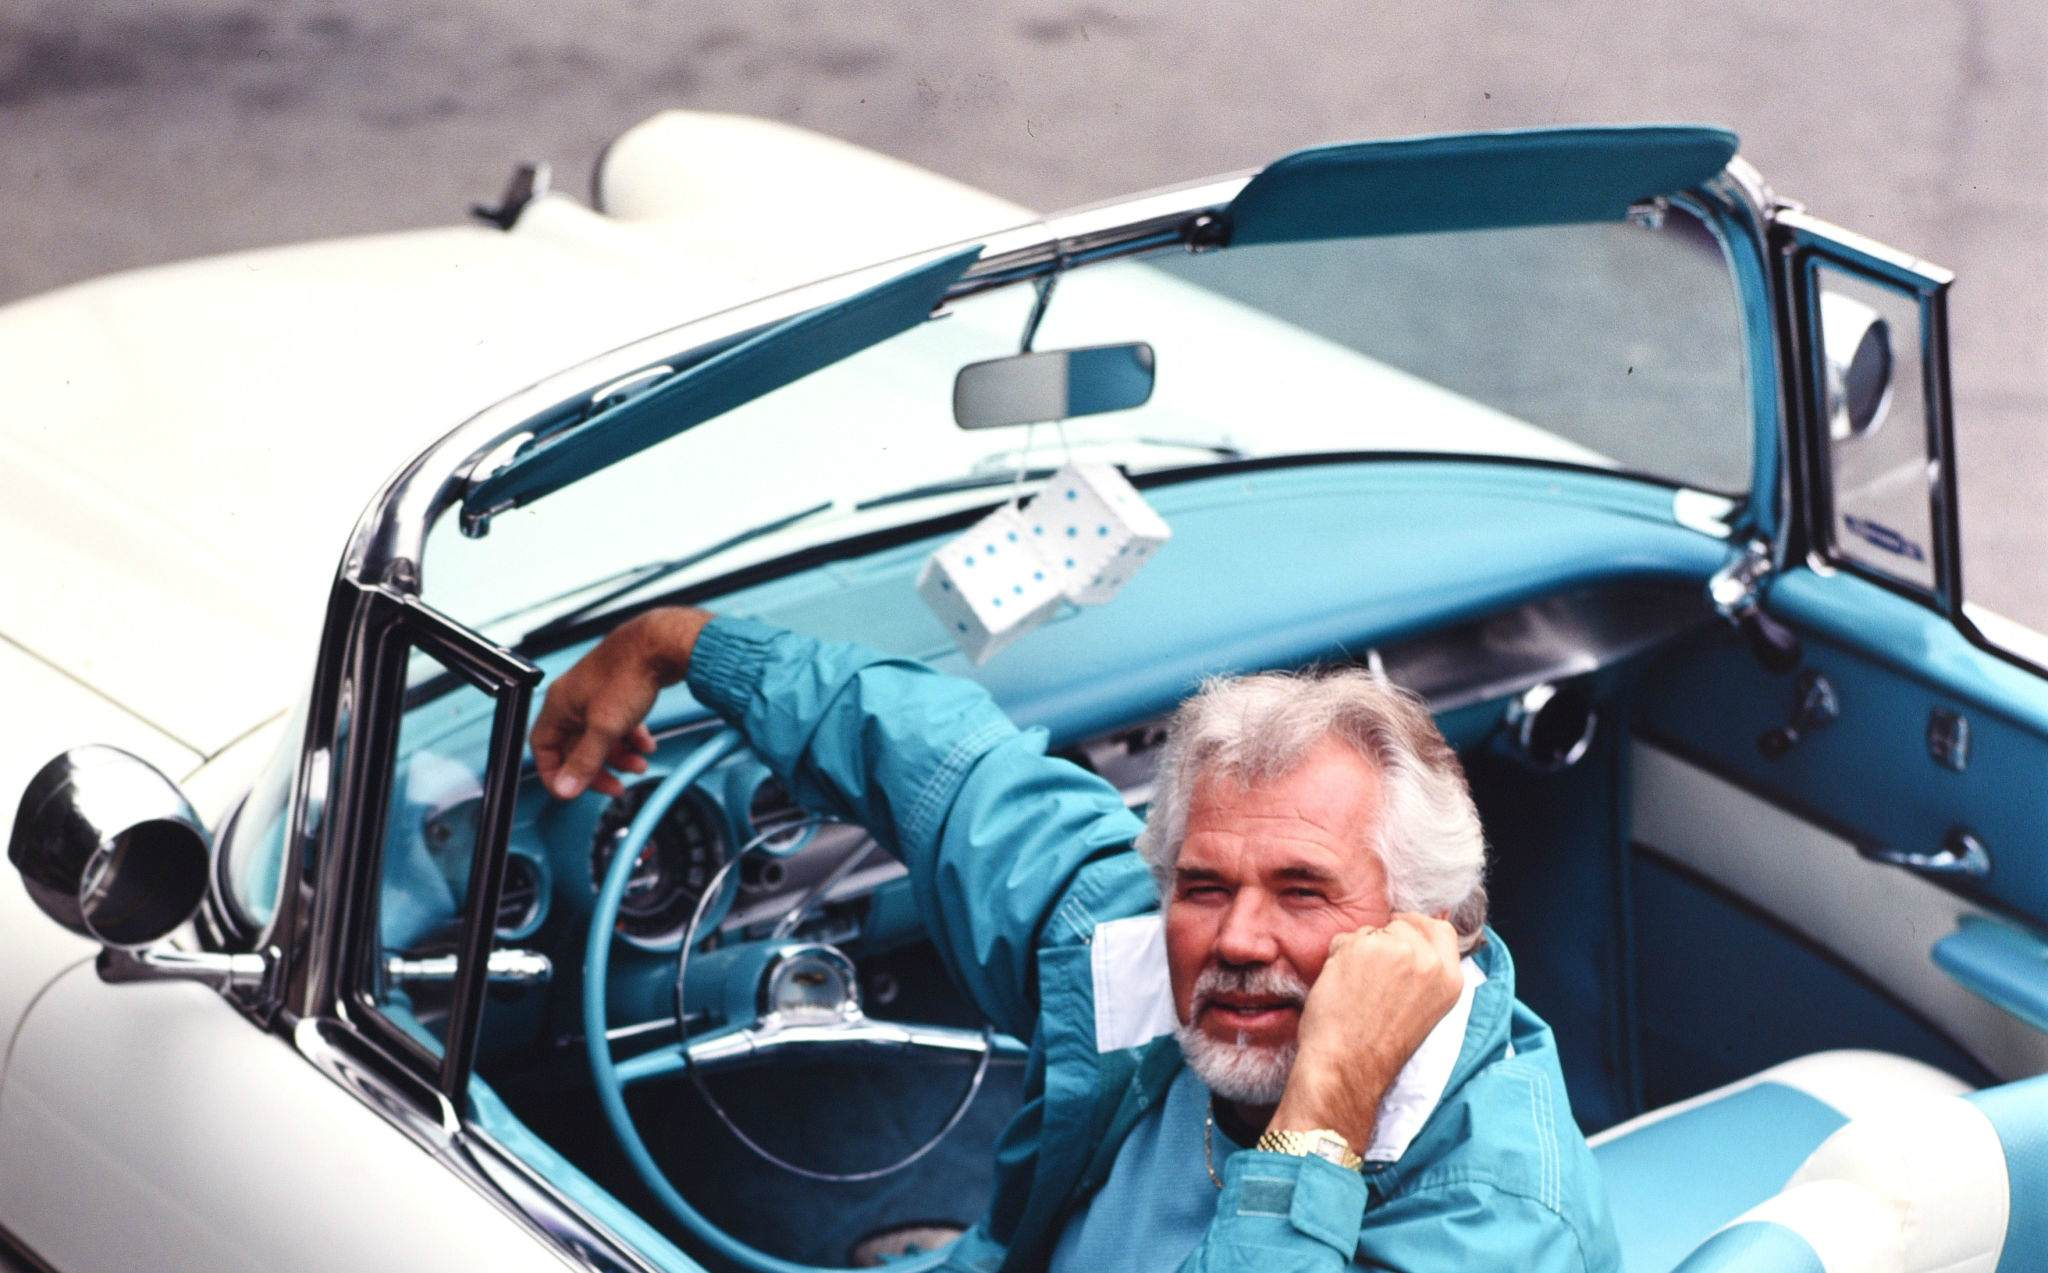 Kenny Rogers with his 1957 convertible Cadillac January 15, 1990 in Beverly Hills, Los Angeles, California